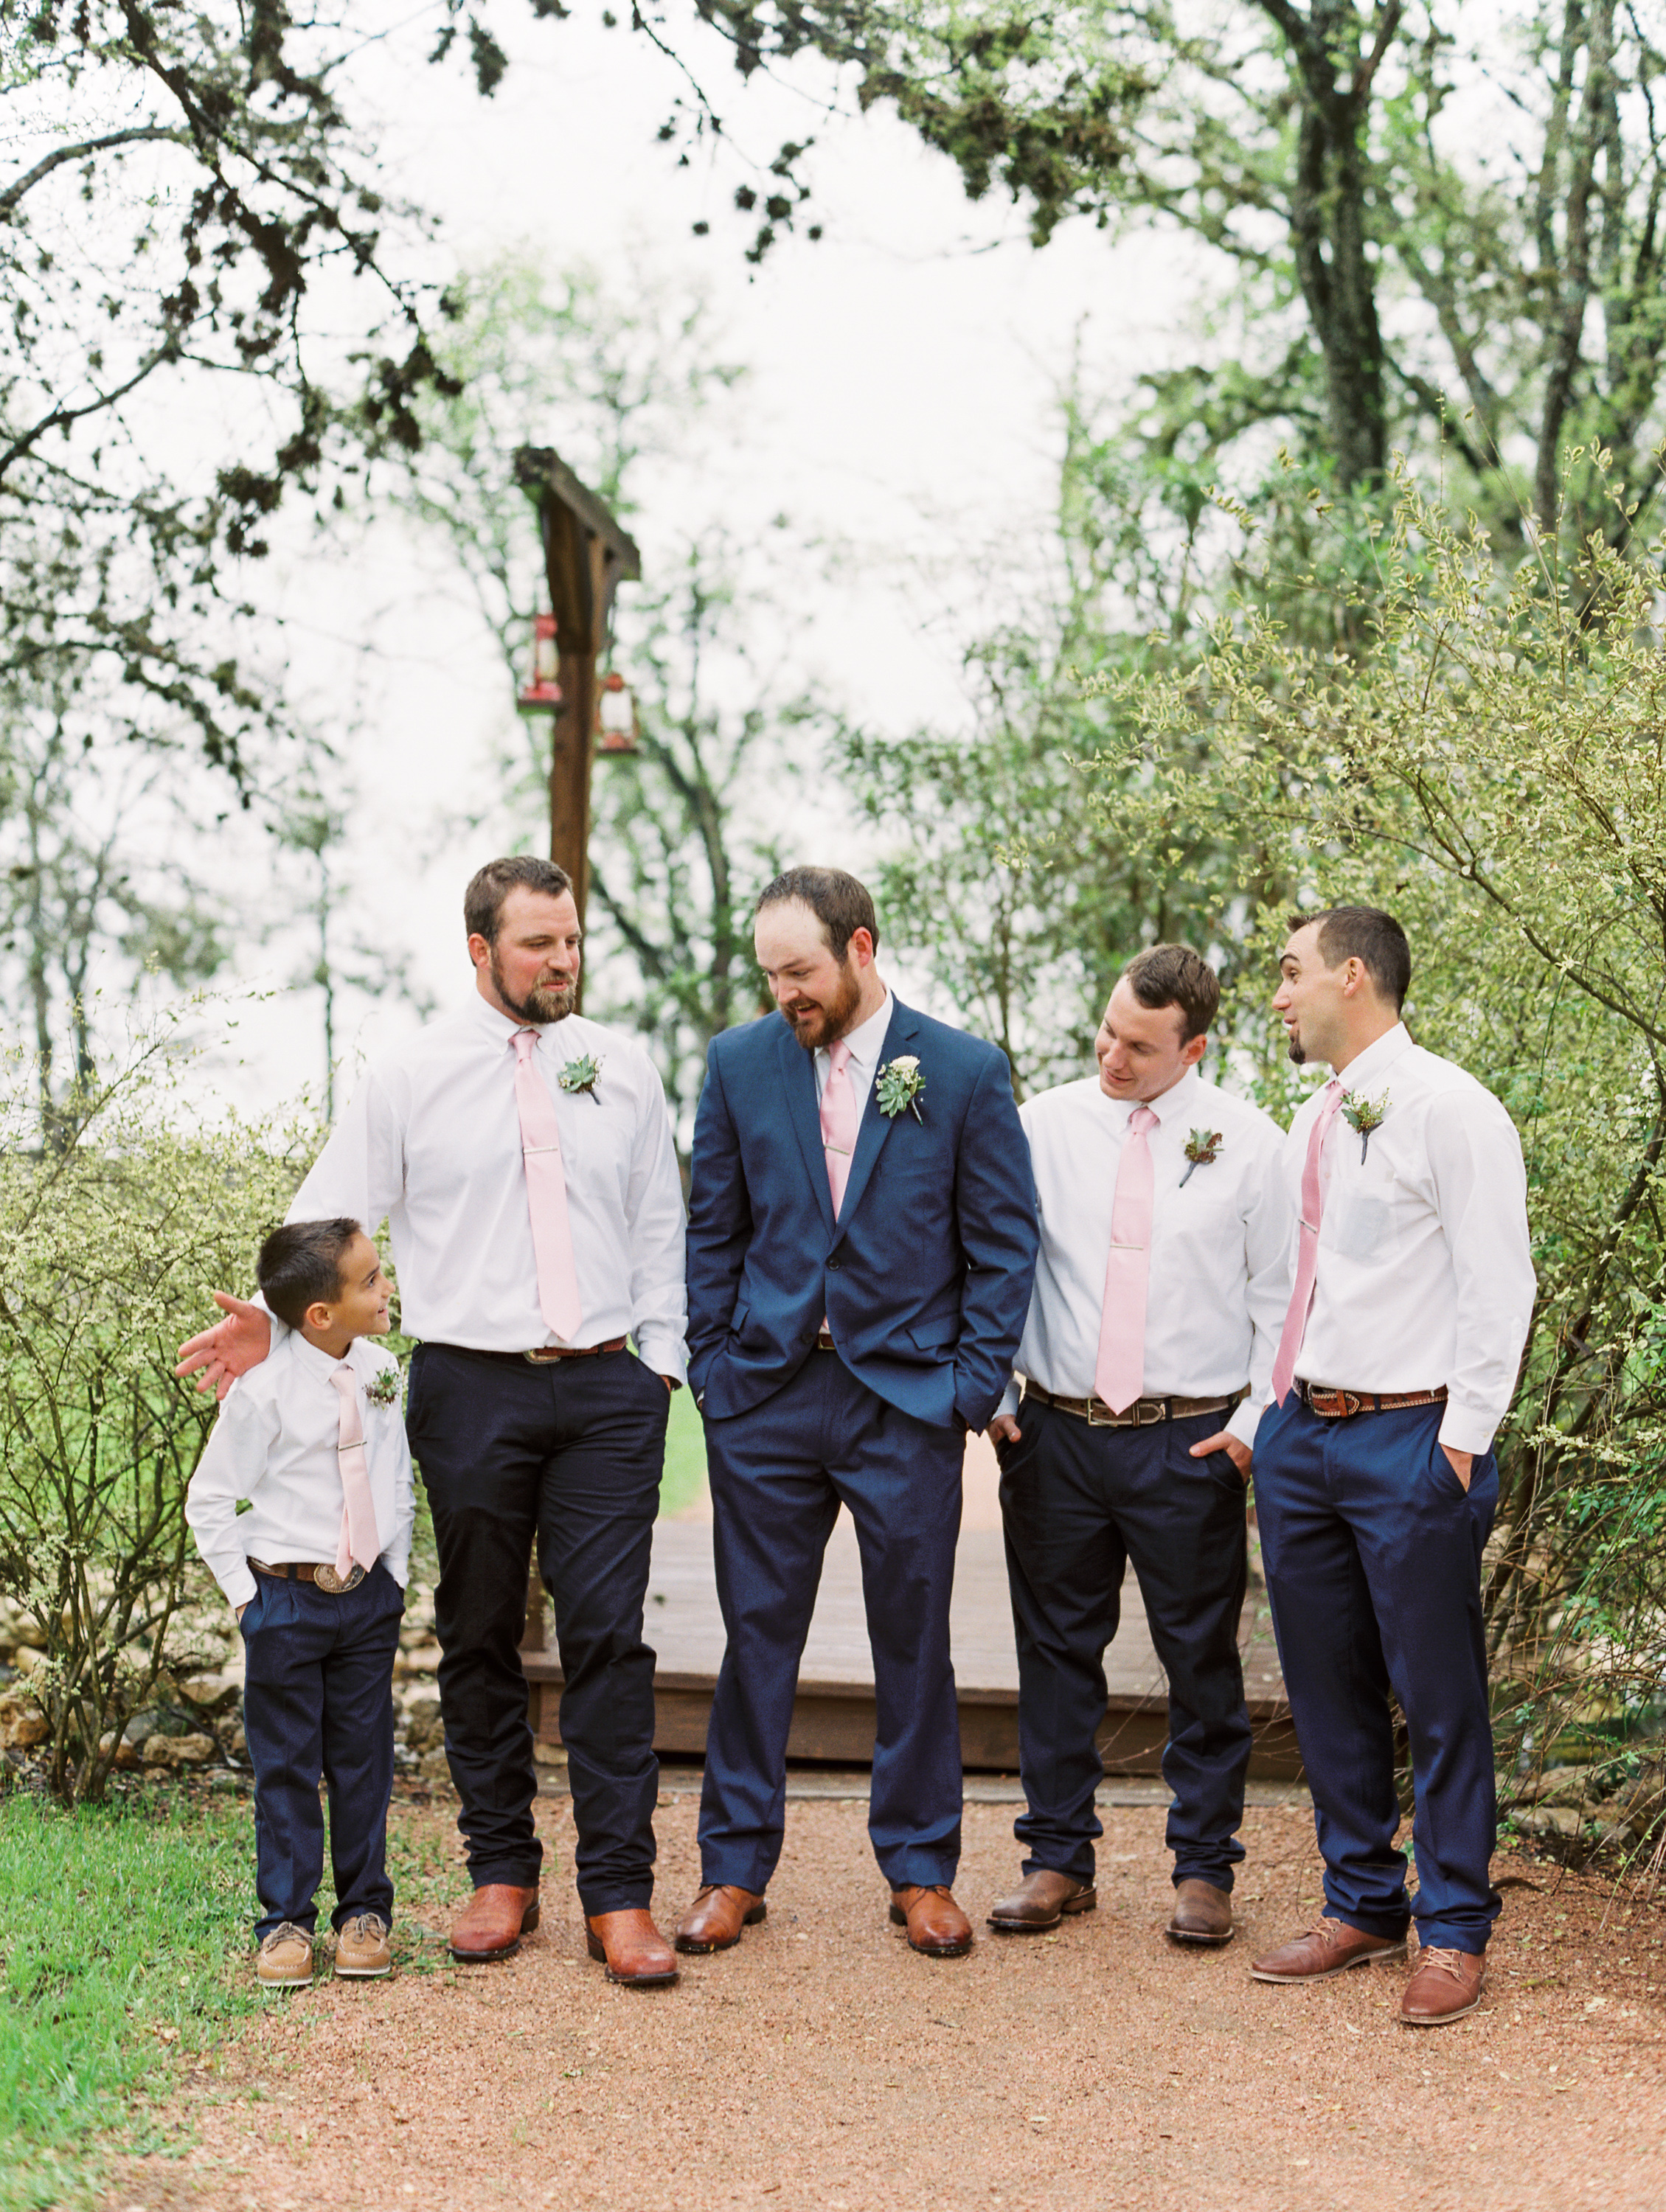 Hill Country Spring Wedding at Red Bud Hall | Austin Wedding Photographer | Film Wedding Photographer | Britni Dean Photography | Rainy Day Wedding Inspiration | navy groomsmen suit